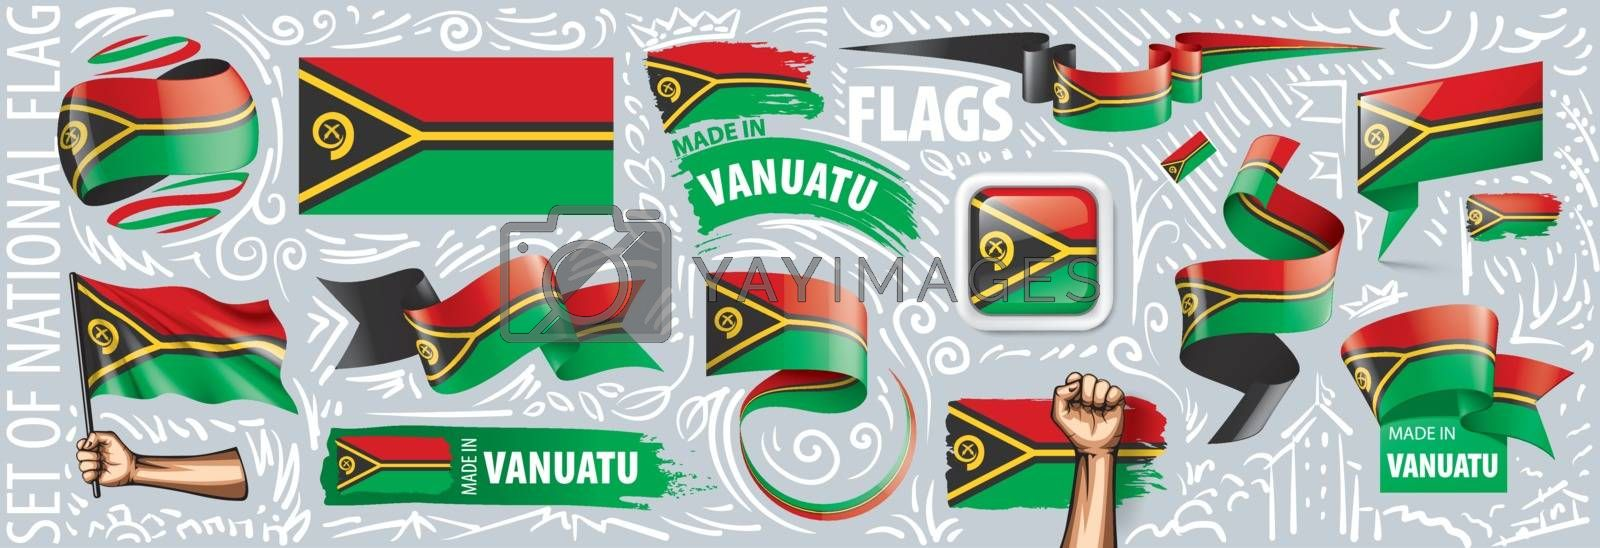 Vector set of the national flag of Vanuatu in various creative designs.